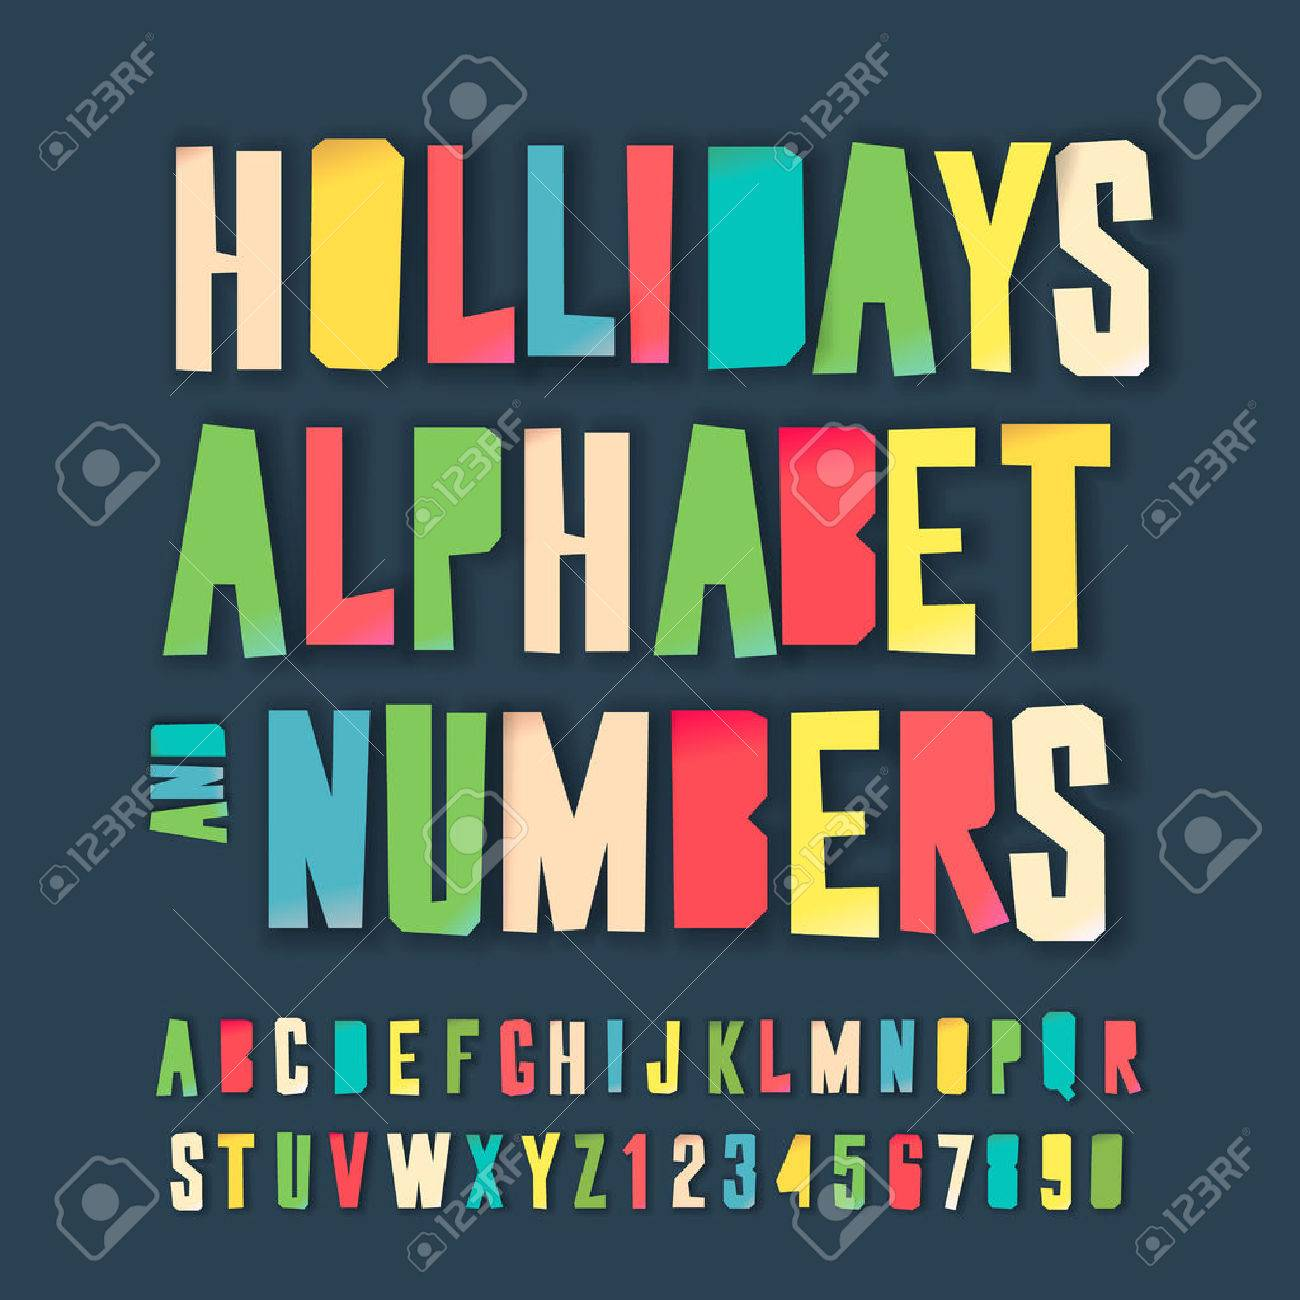 Holidays Alphabet And Numbers Colorful Art And Craft Design